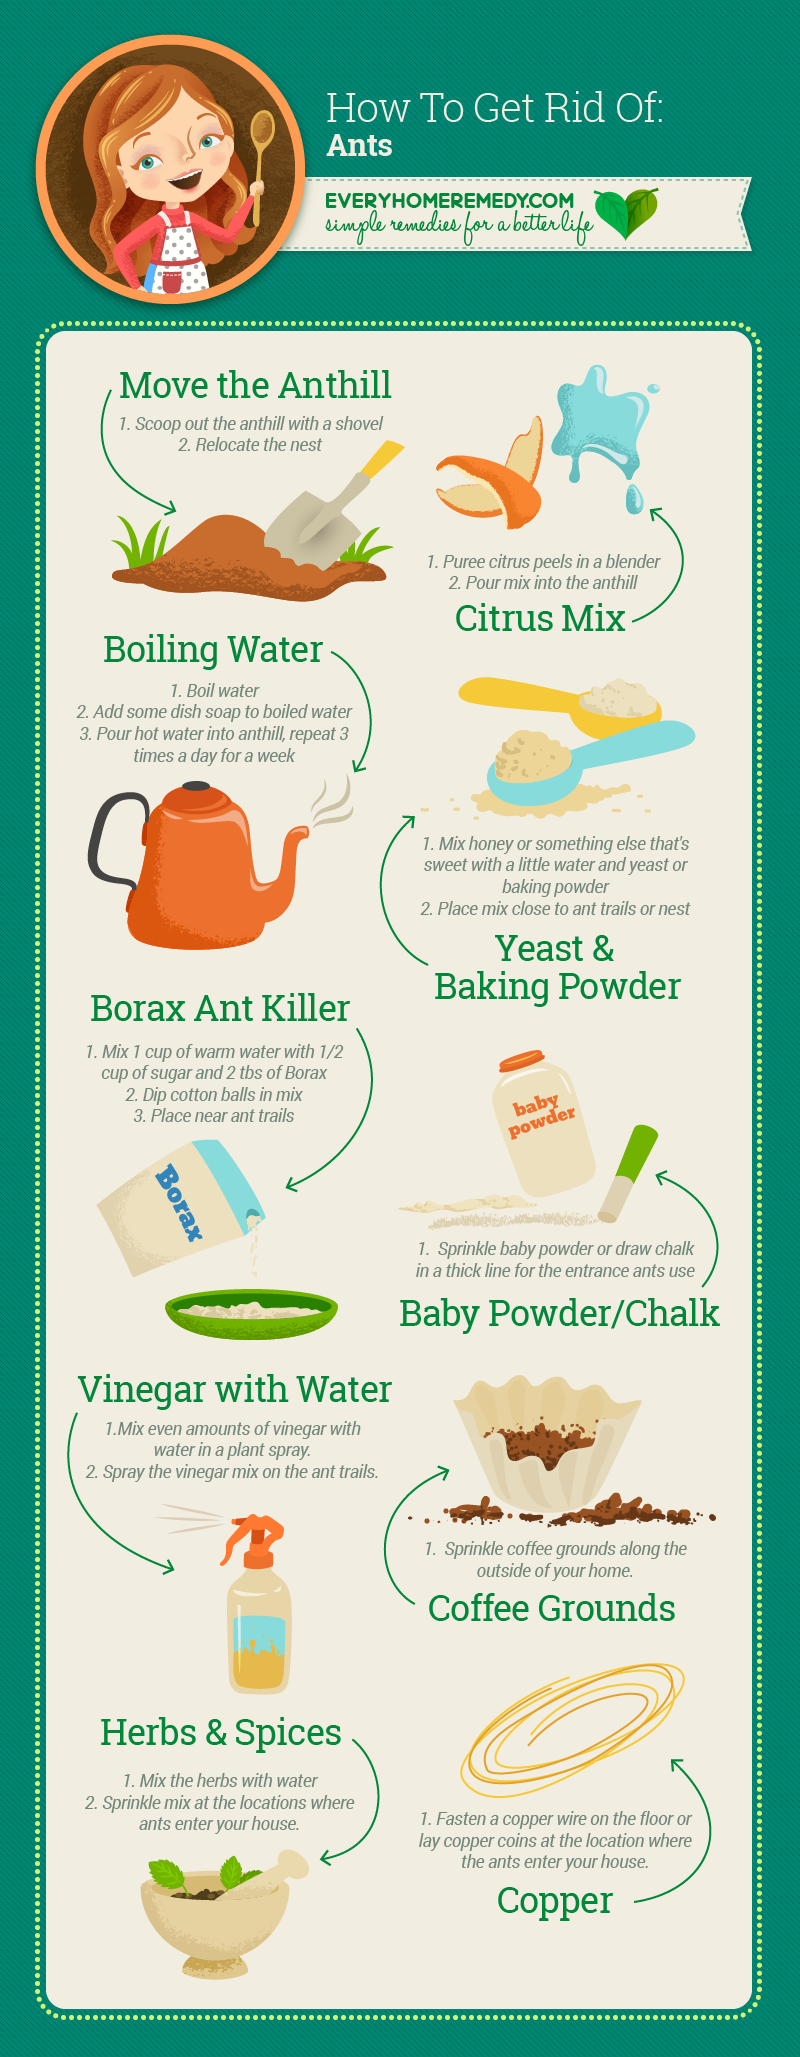 How to Get Rid of Ants in the House Naturally: 10 Easy Ways |